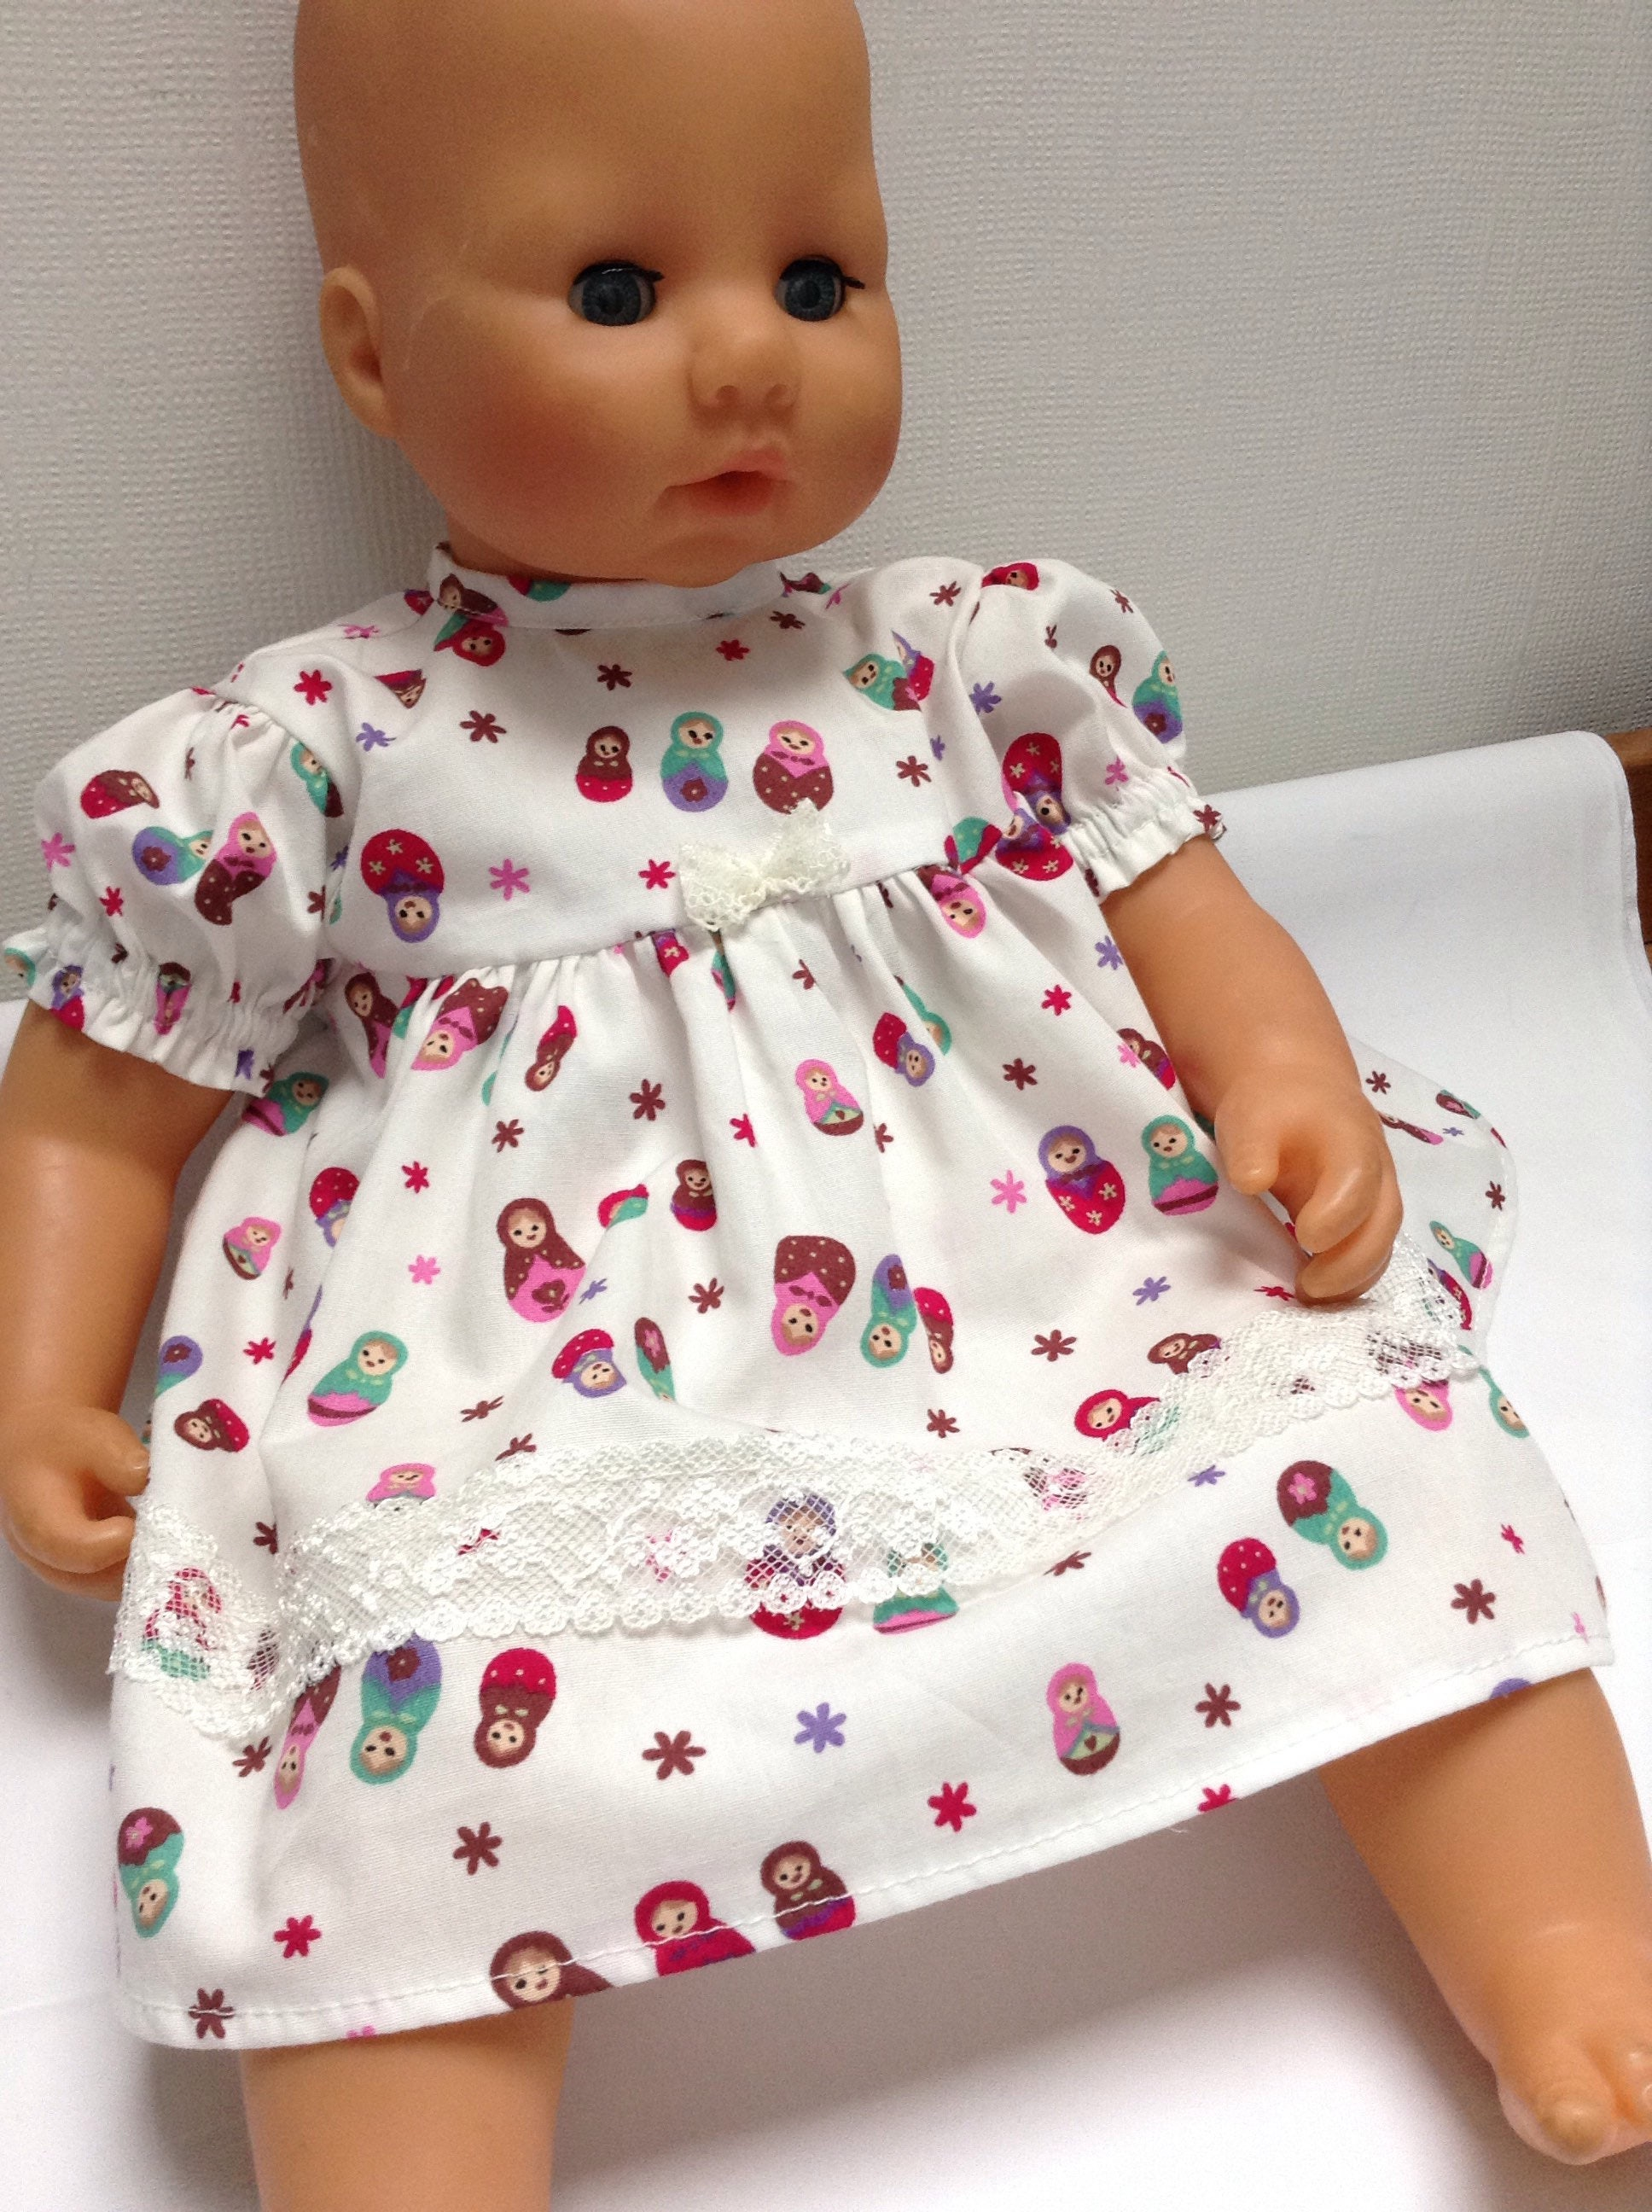 Dolls Clothes 18 inch (46cm) Dress  Panties to fit Baby Annabell and similar size baby dolls